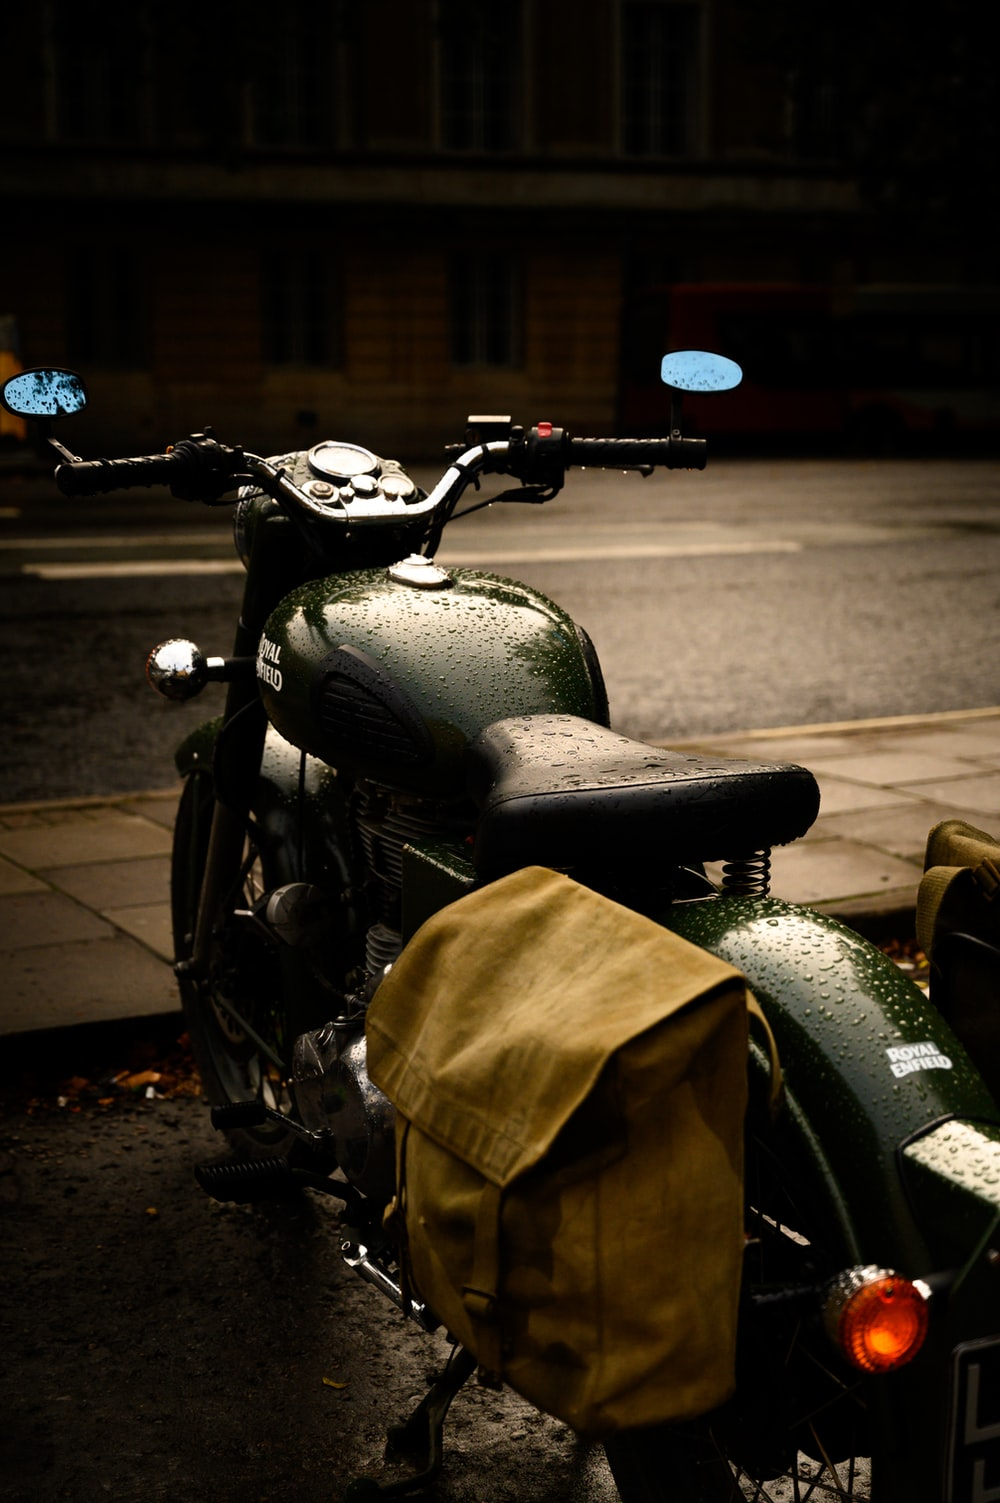 black motorcycle with brown textile on top